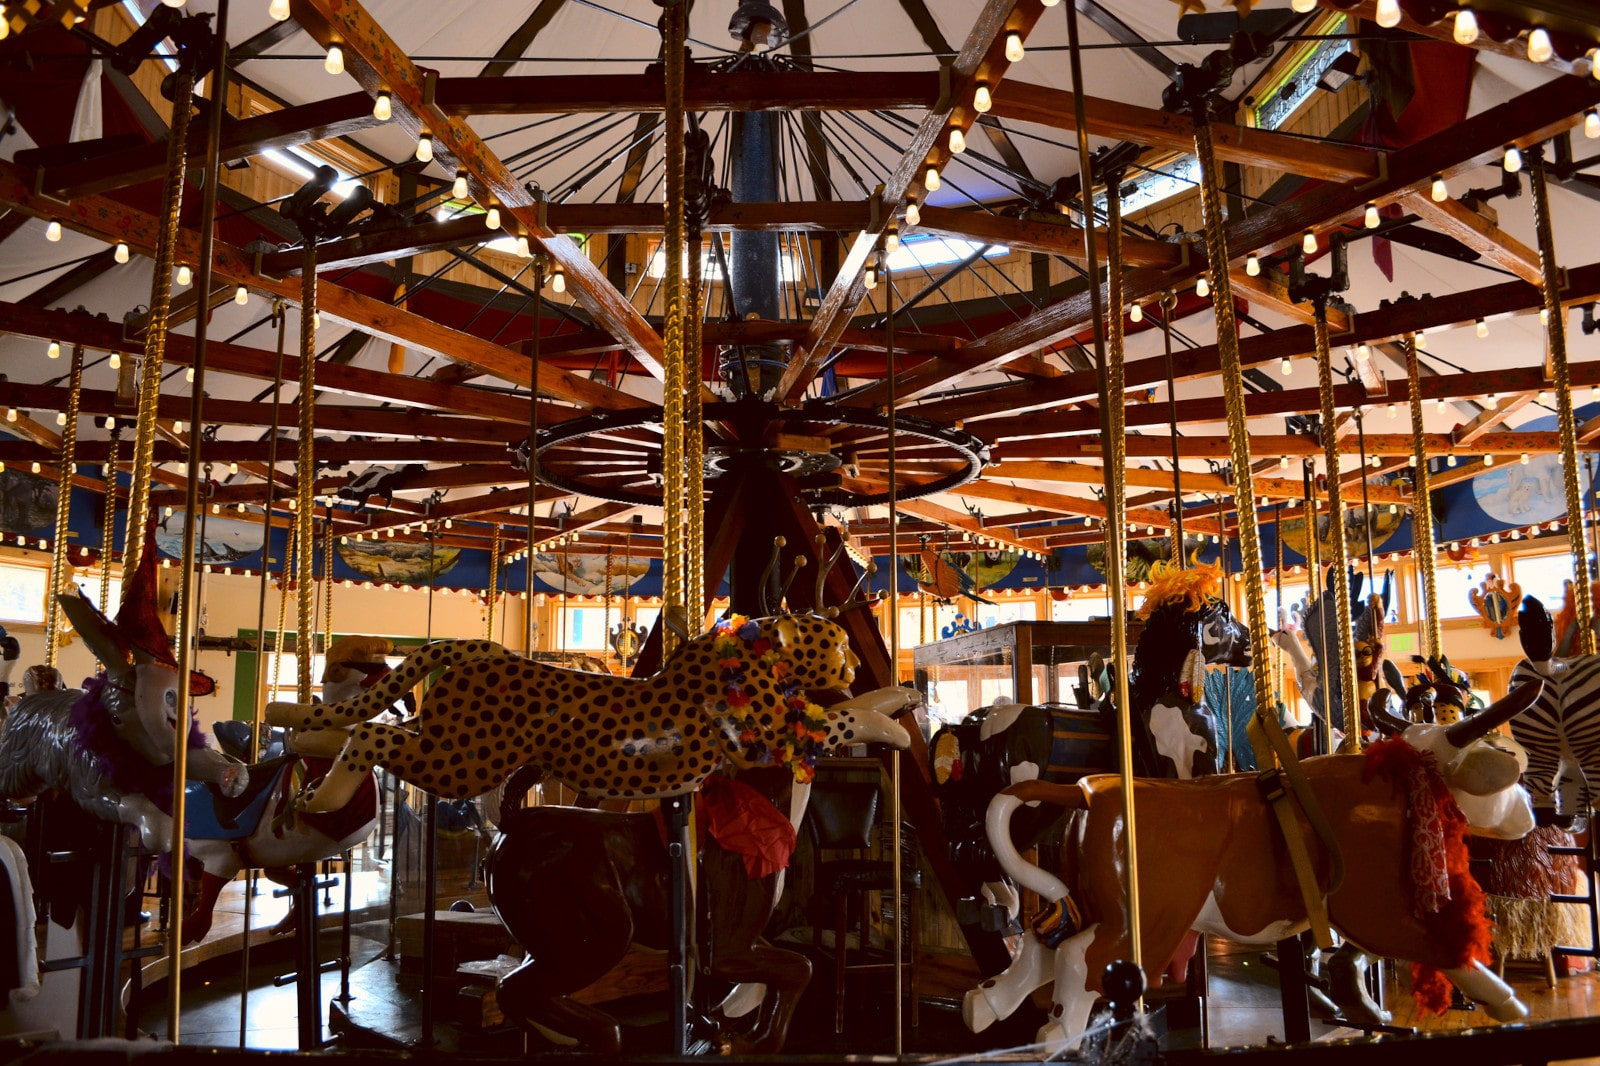 Image of the Carousel of Happiness in Nederland, Colorado